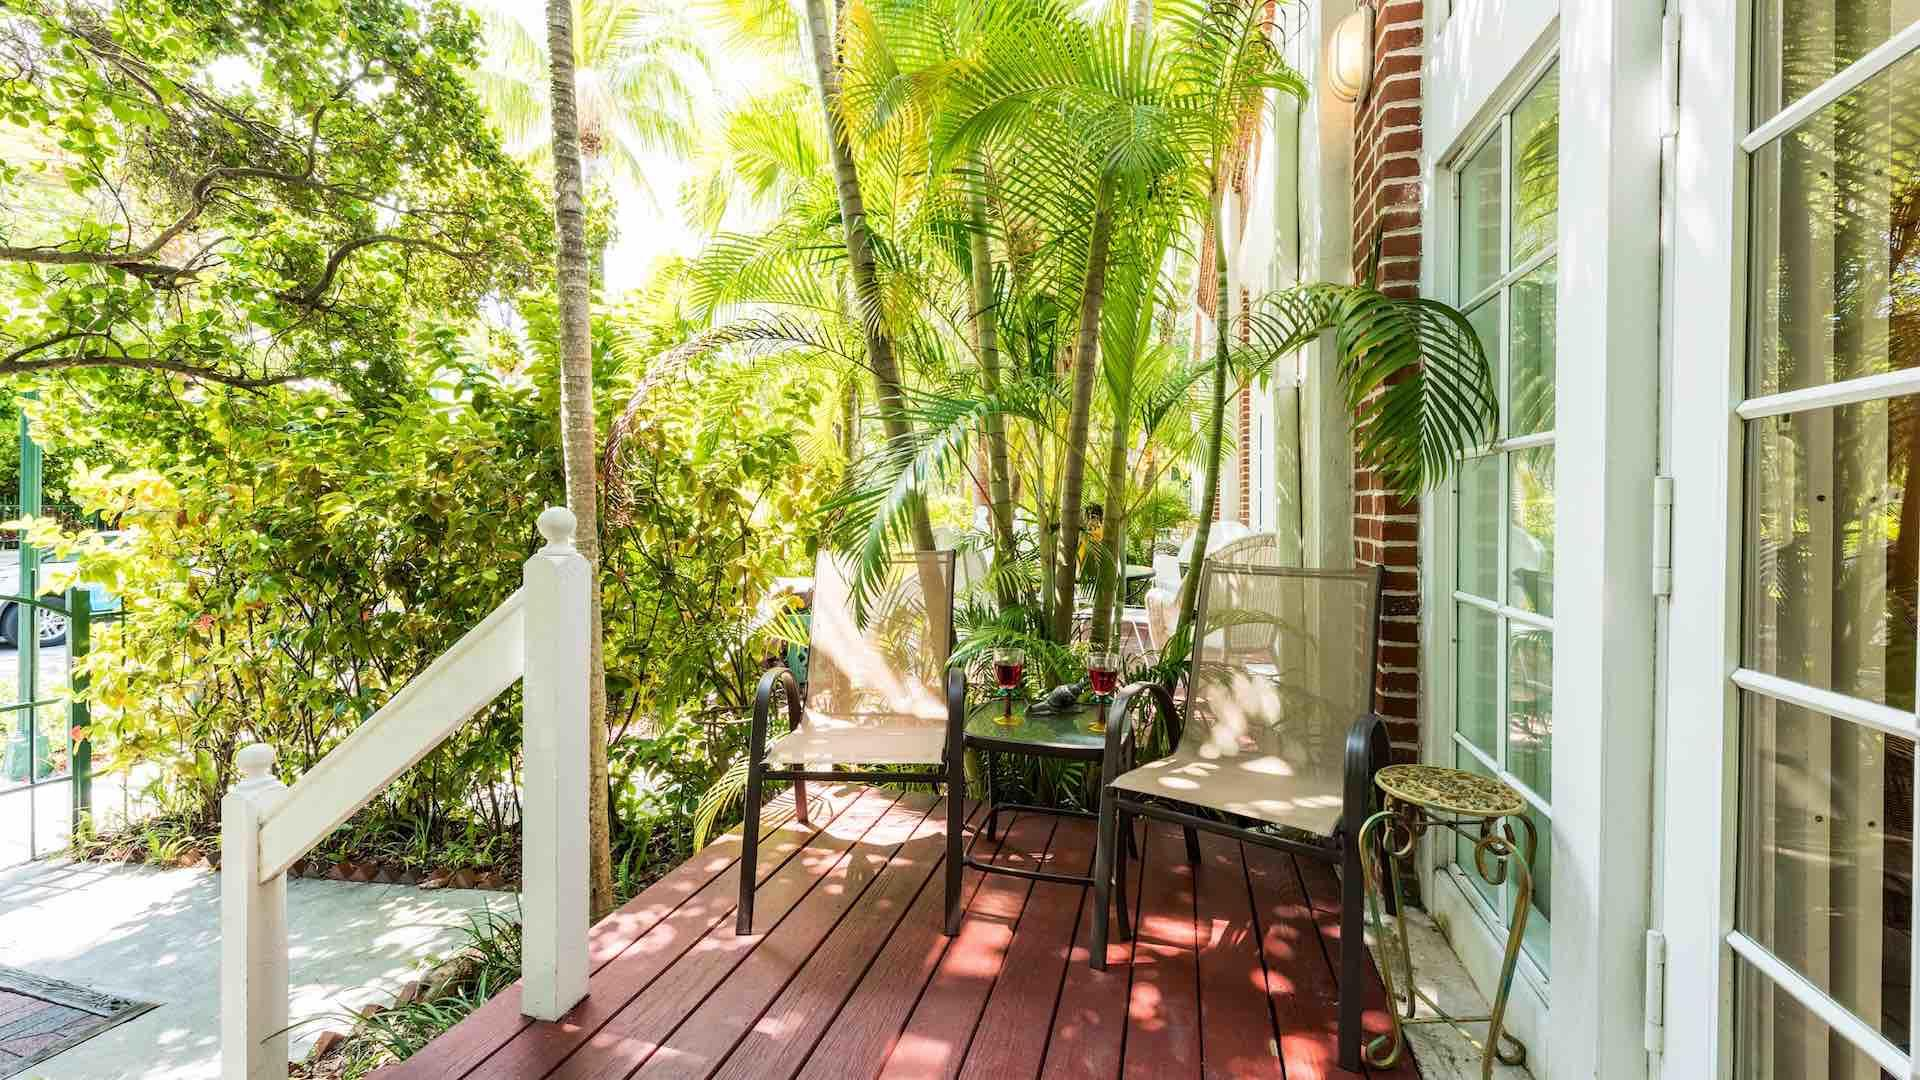 Villa Bahama is located at The Foundry, within the gated community of Truman Annex...